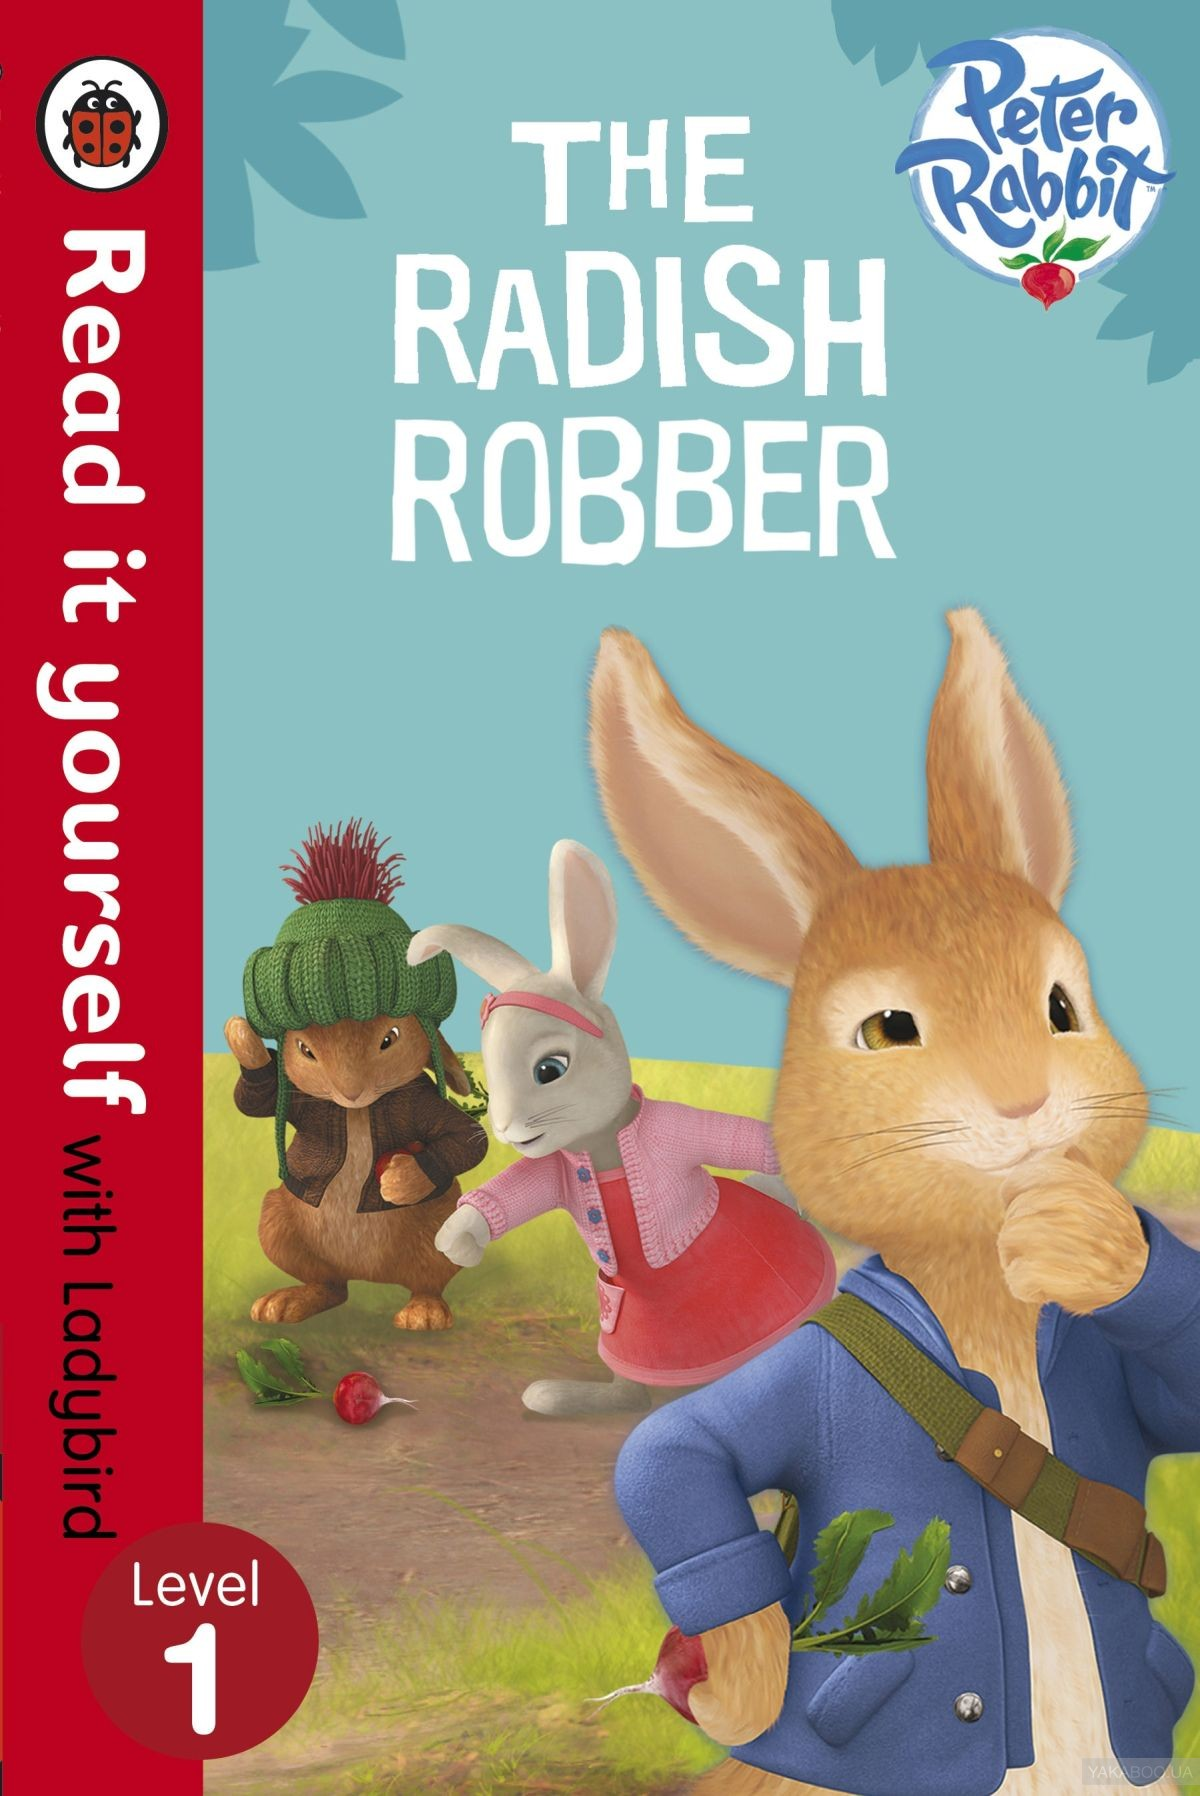 Peter Rabbit. The Radish Robber фото